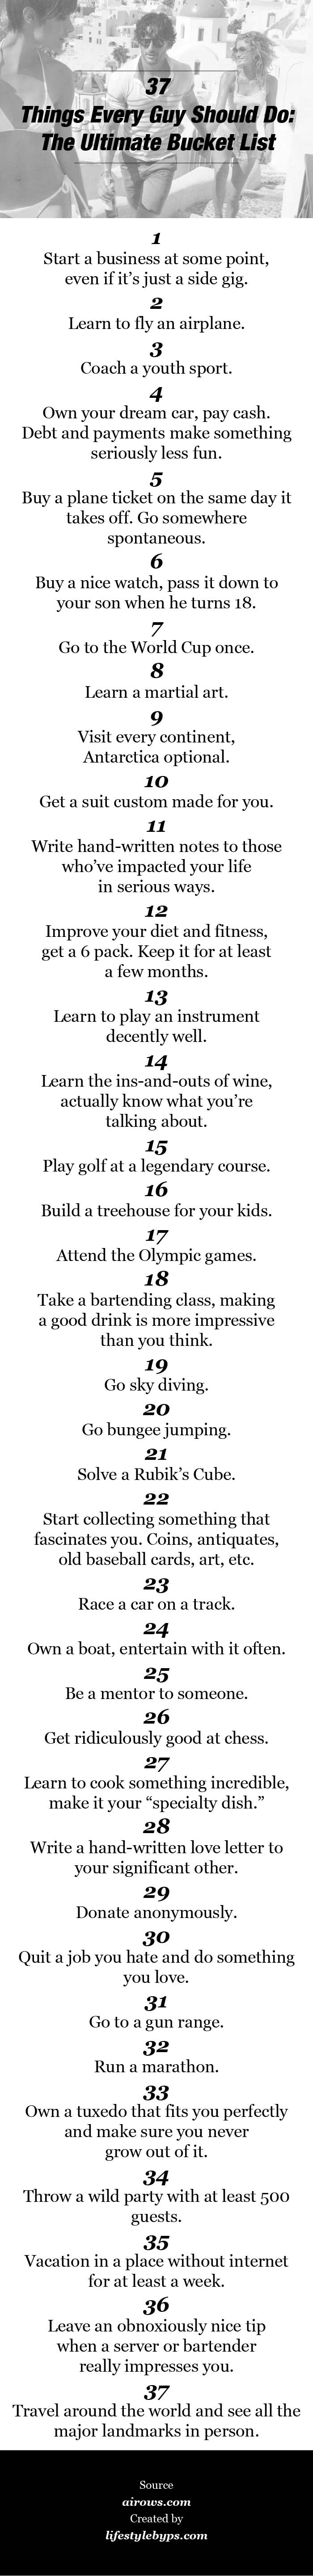 37 Things Every Man Should Do The Ultimate Bucket List